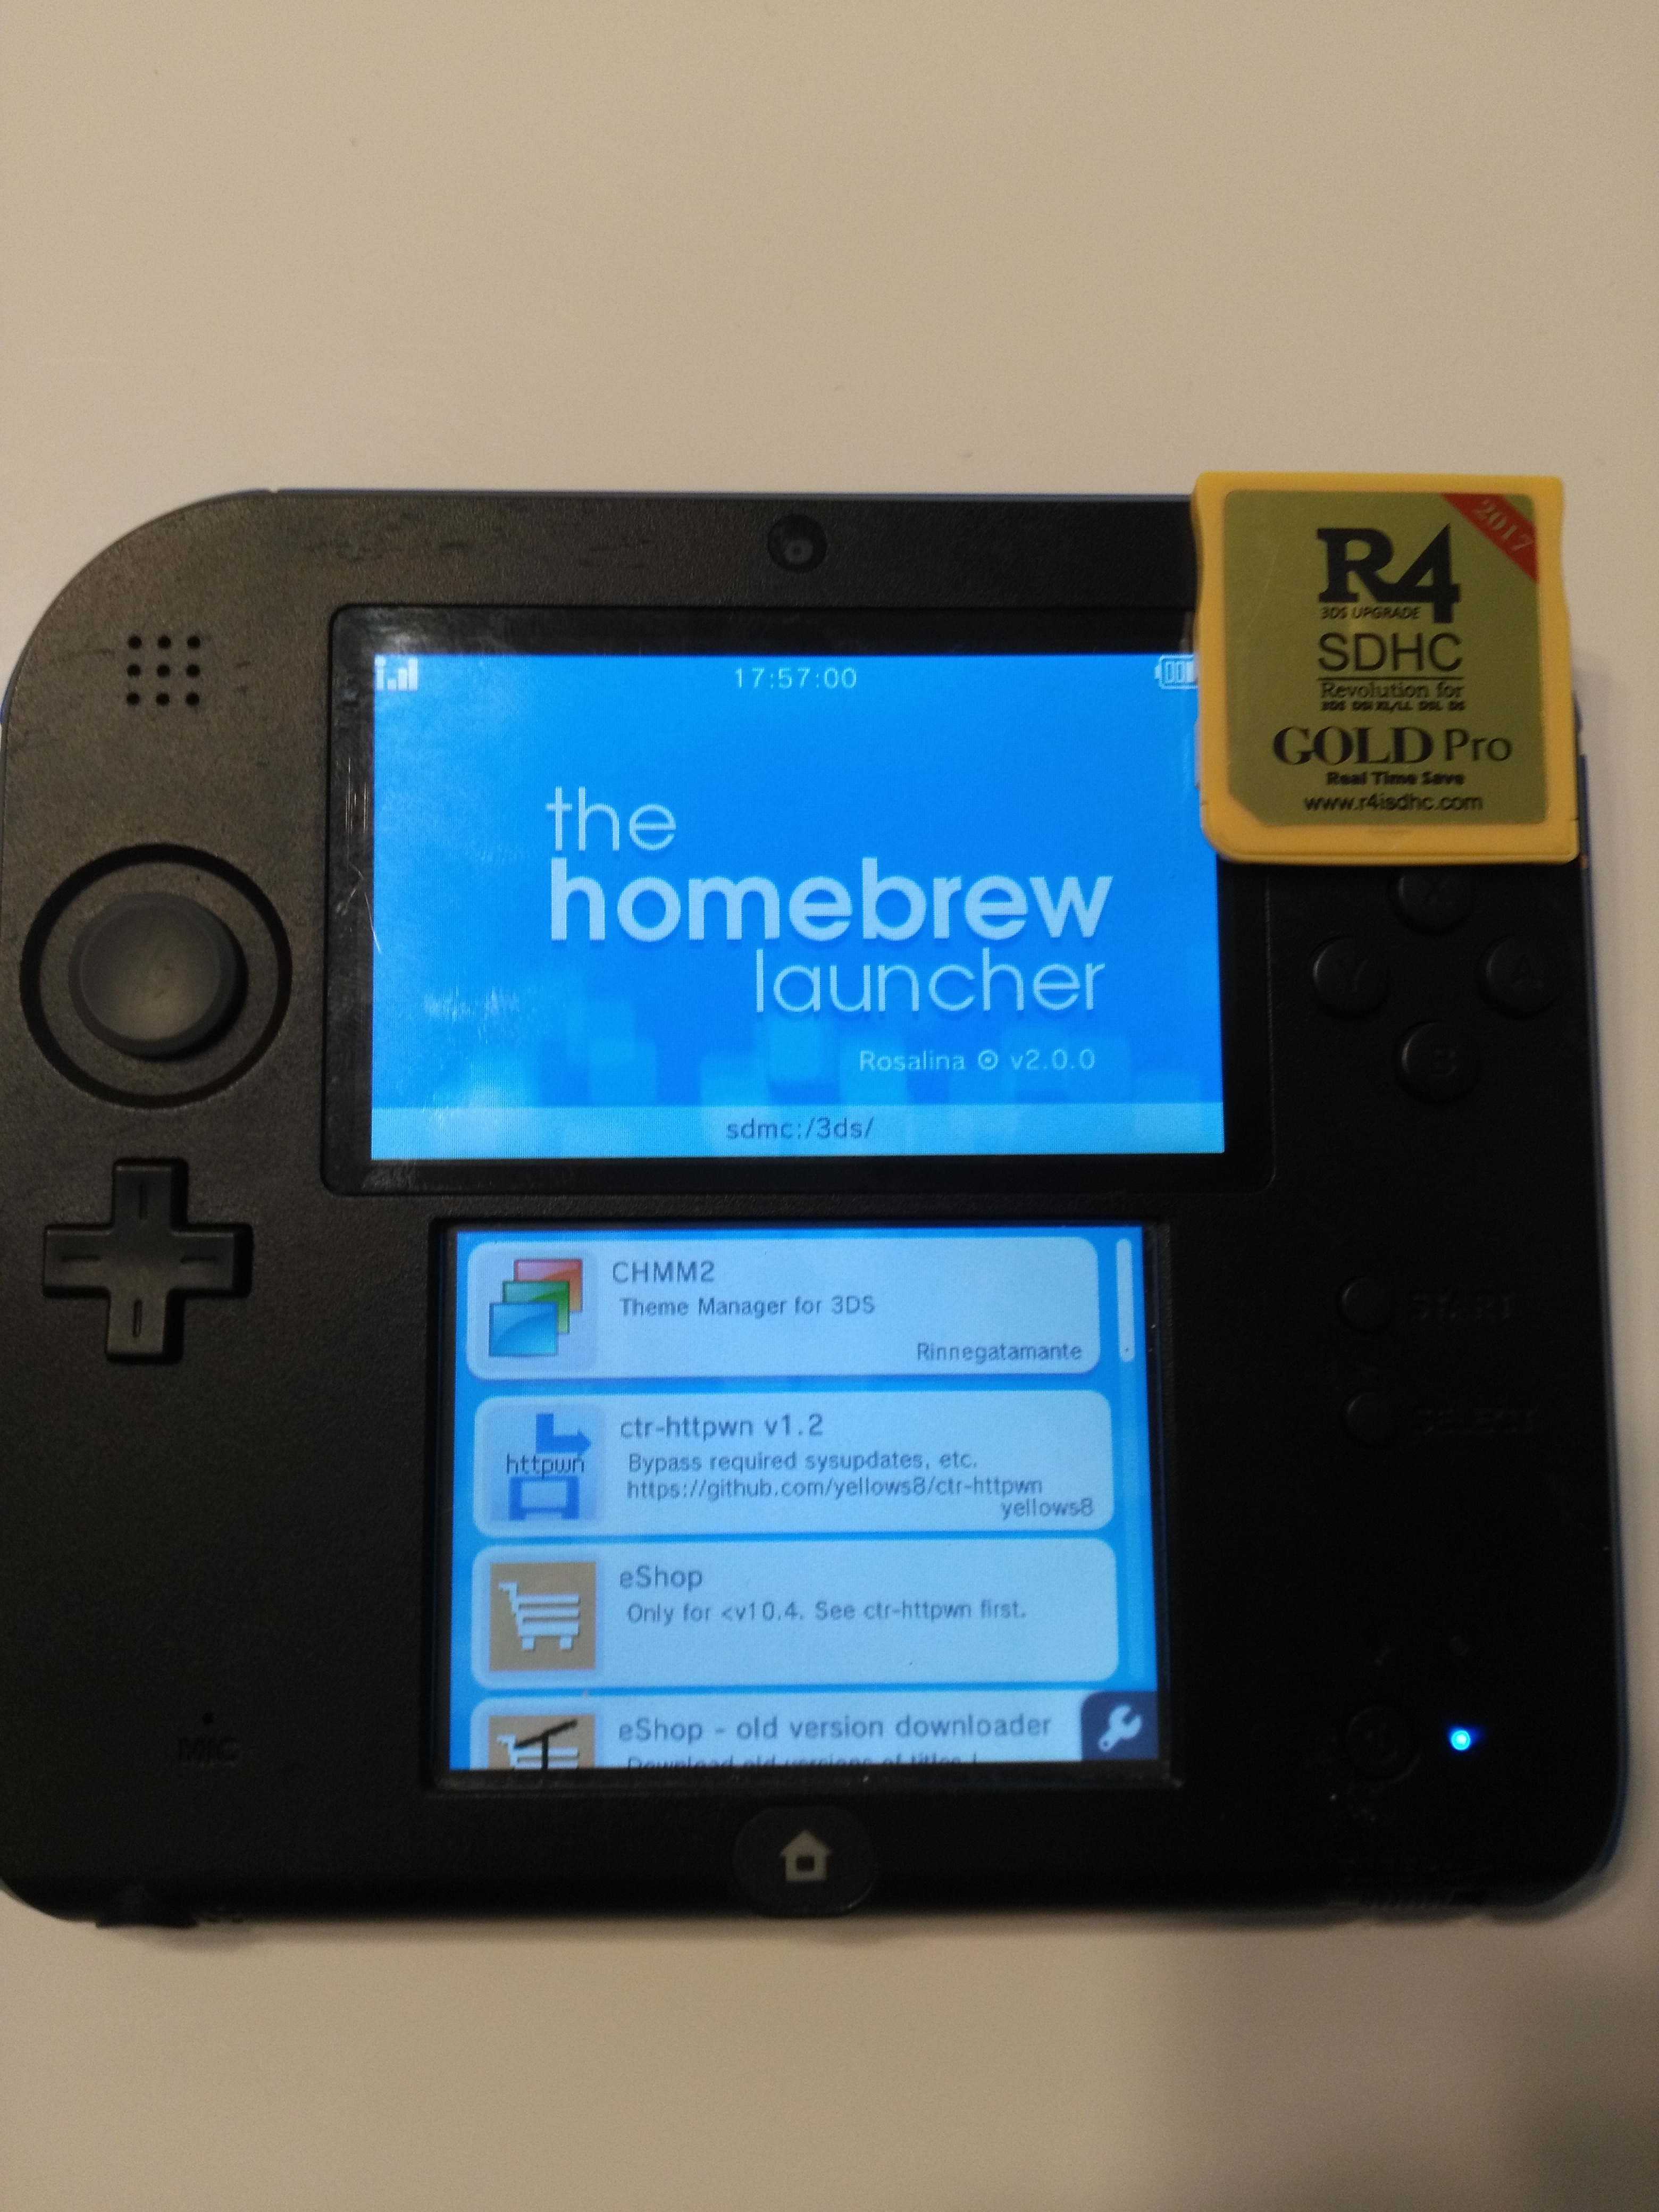 R4iSDHC Gold Pro support? · Issue #26 · ntrteam/ds_ntrboot_flasher